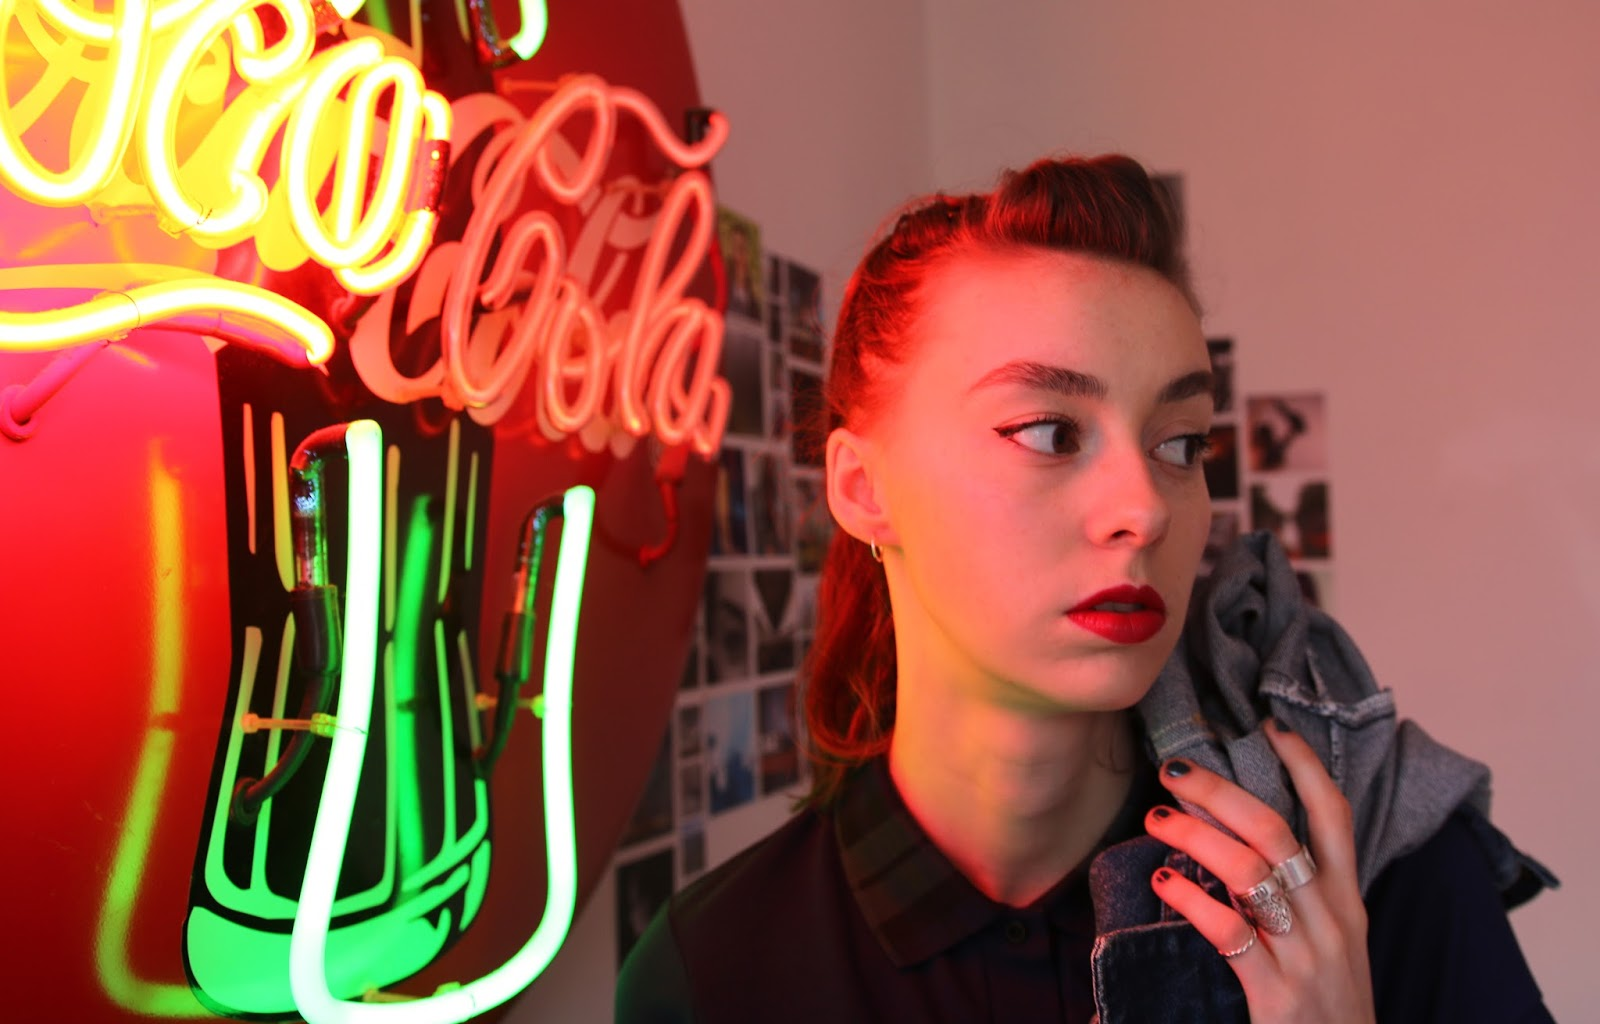 grace, mandeville, sisters, mandeville sisters, fashion bloggers, british, eyeliner, lipstick, retro, neon light, coca cola, coke, retro fashion,